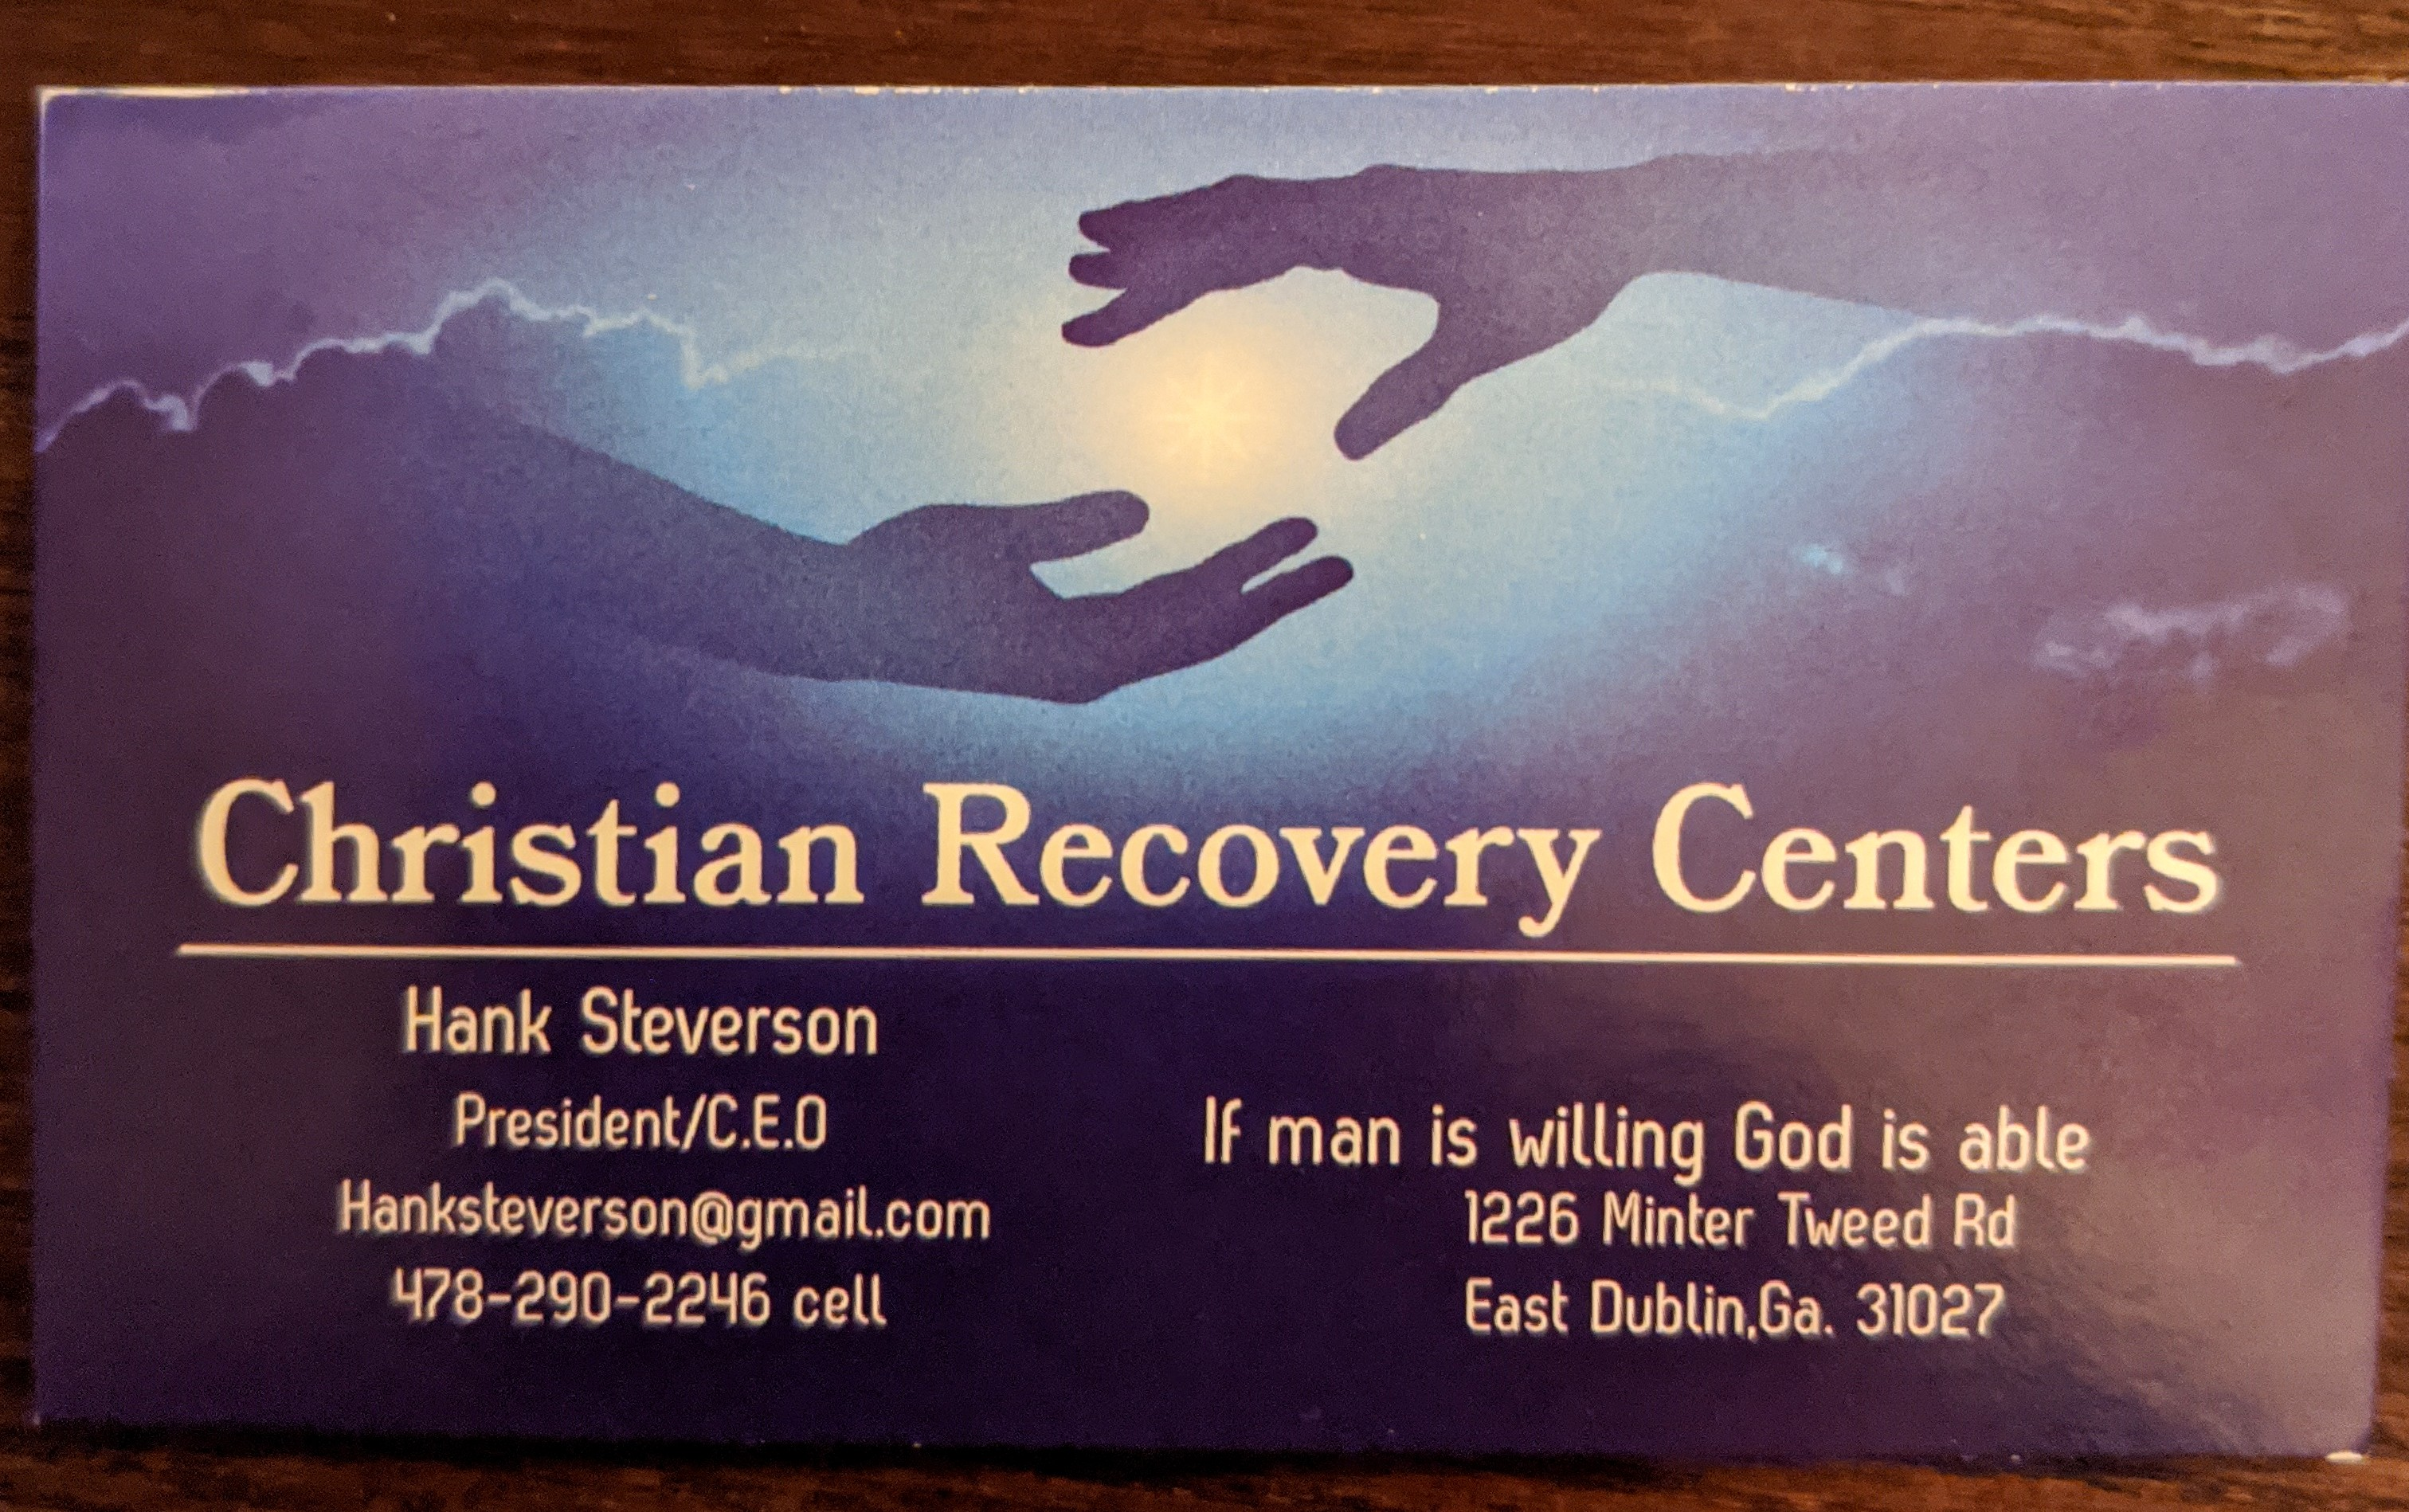 Christian Recovery Centers